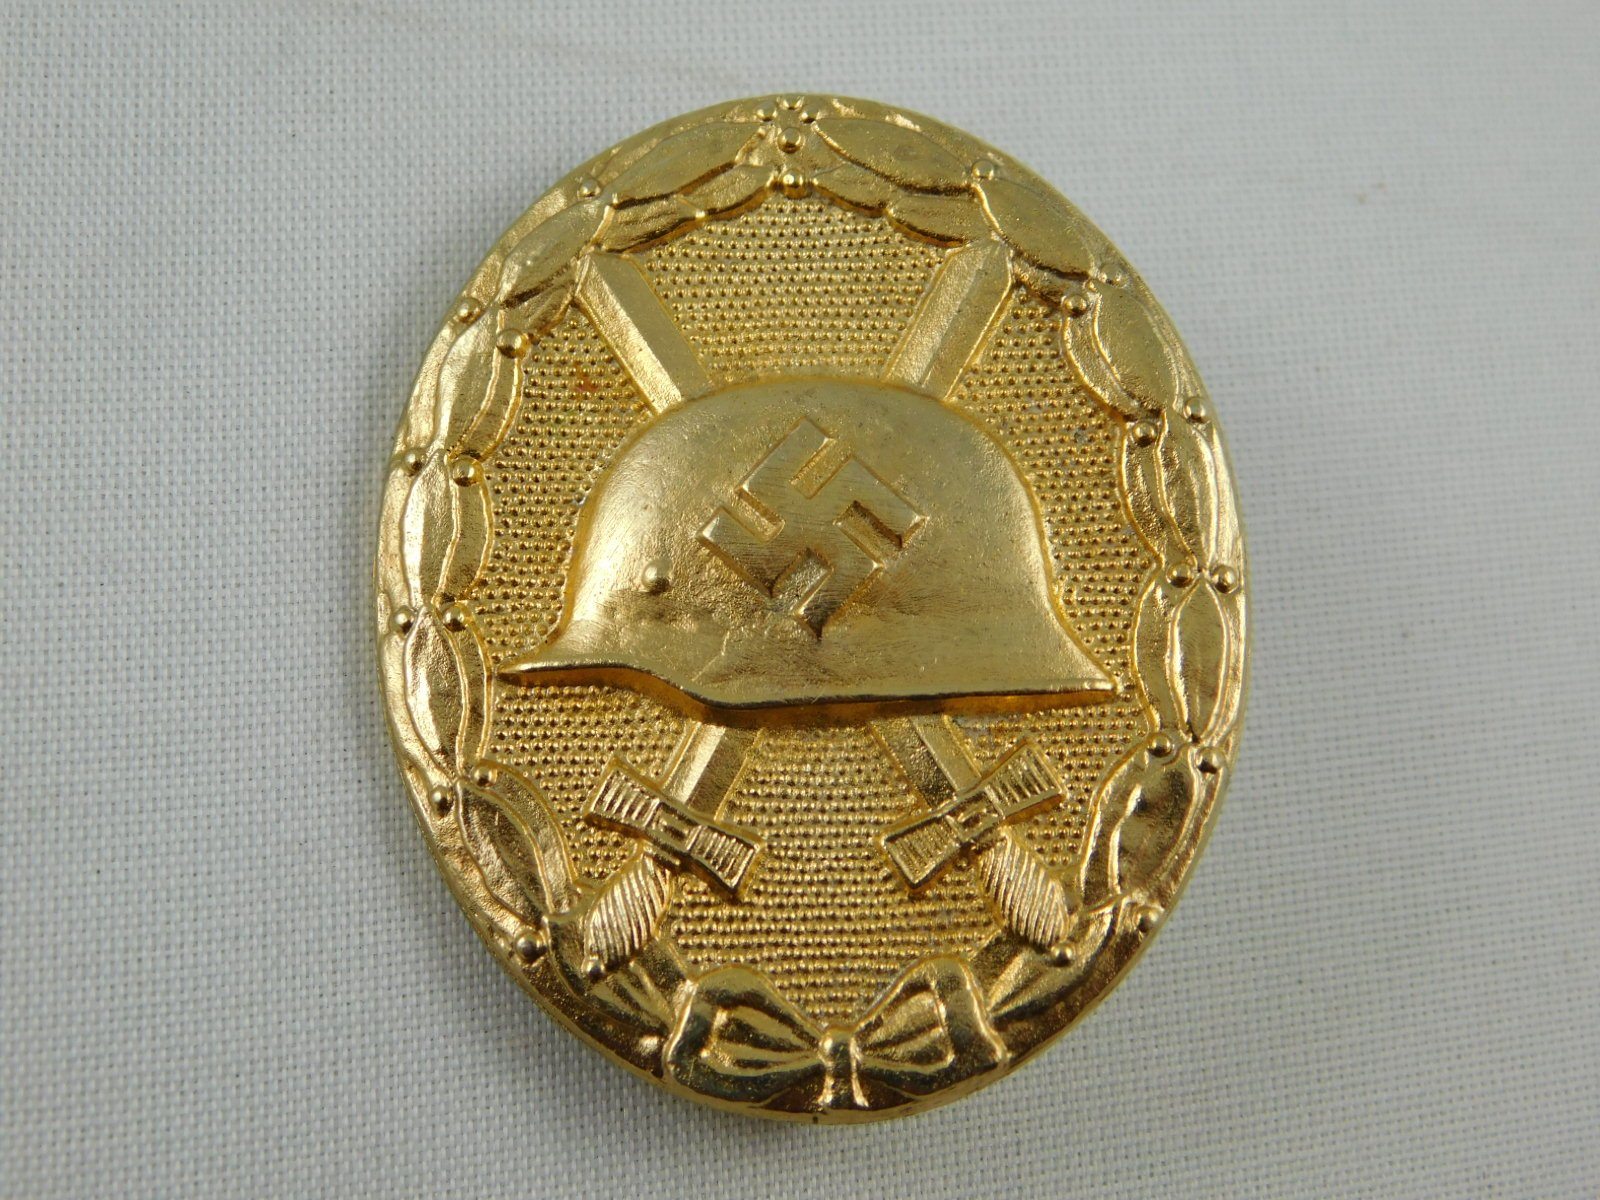 WWII German Wound Badge Gold